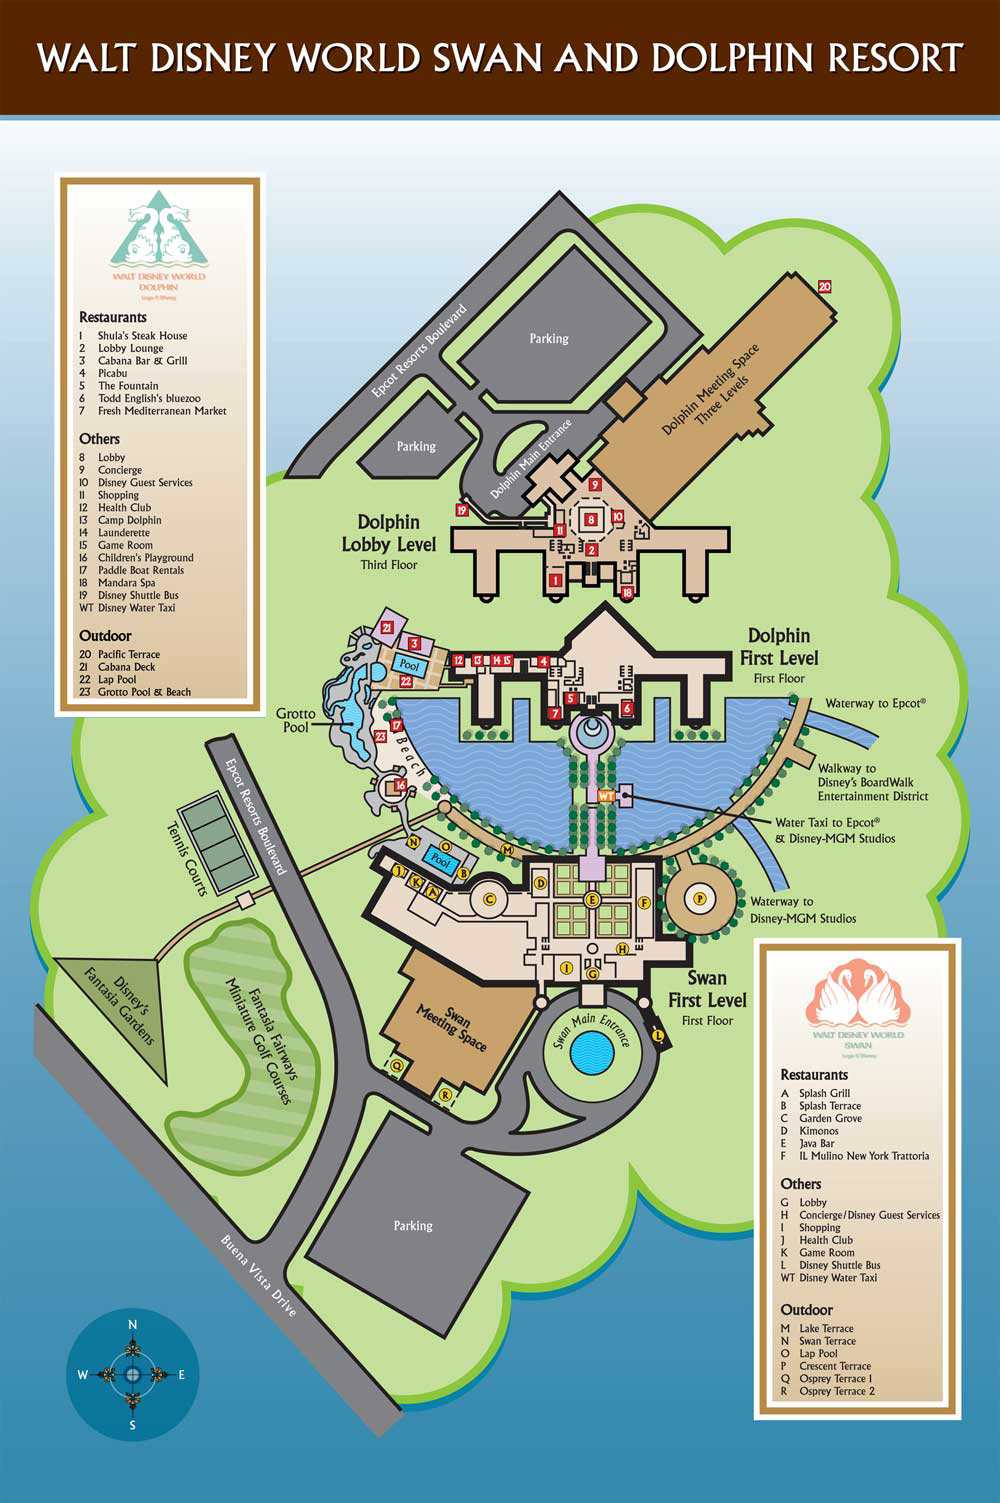 Disney World Maps for Each Resort